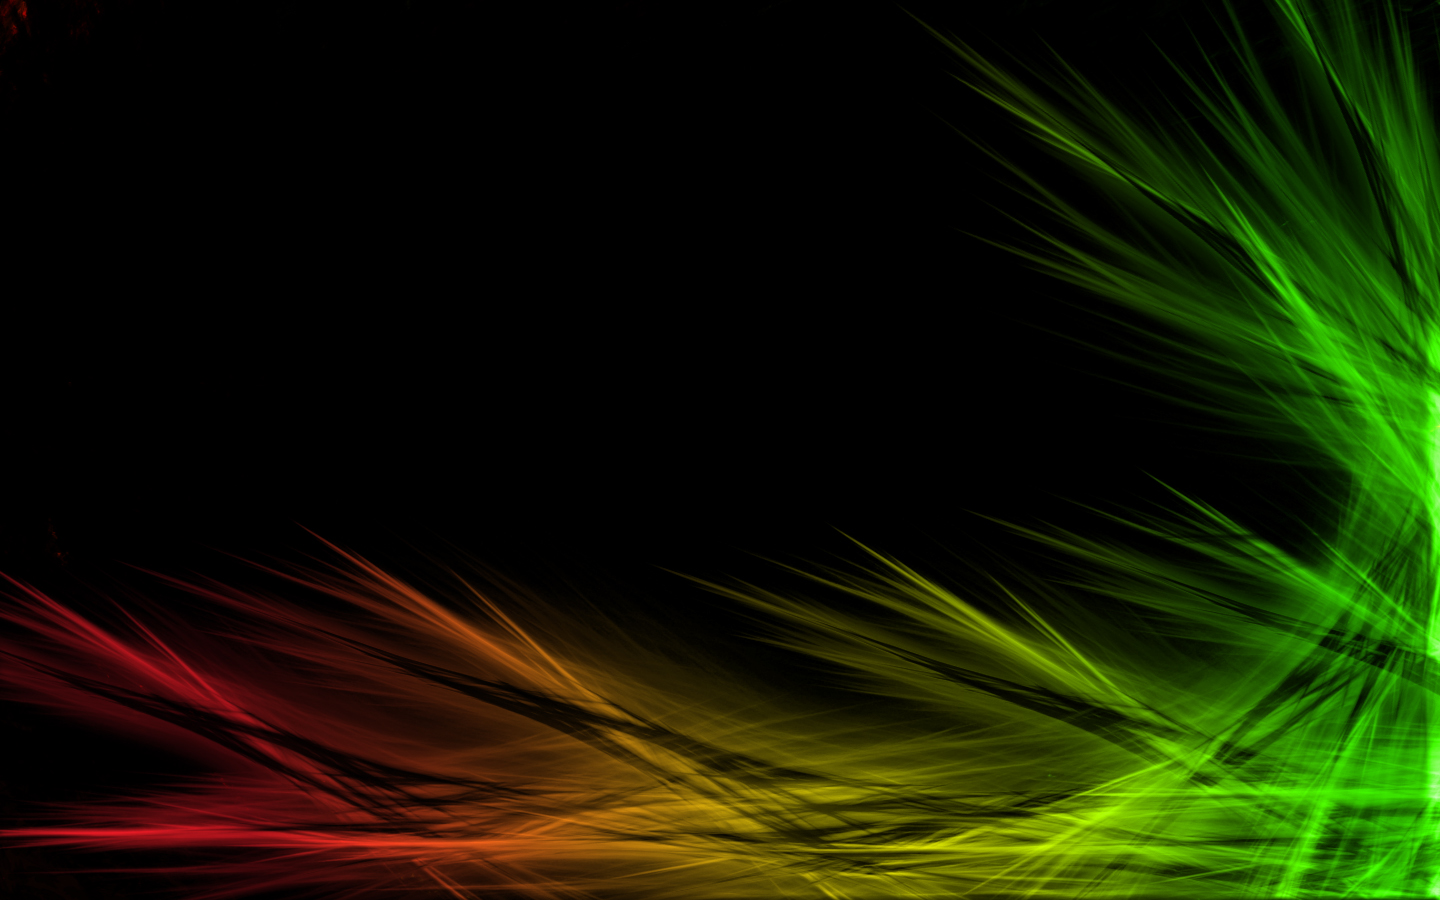 Top 11 HD Abstract Wallpapers Of 2013 1440x900